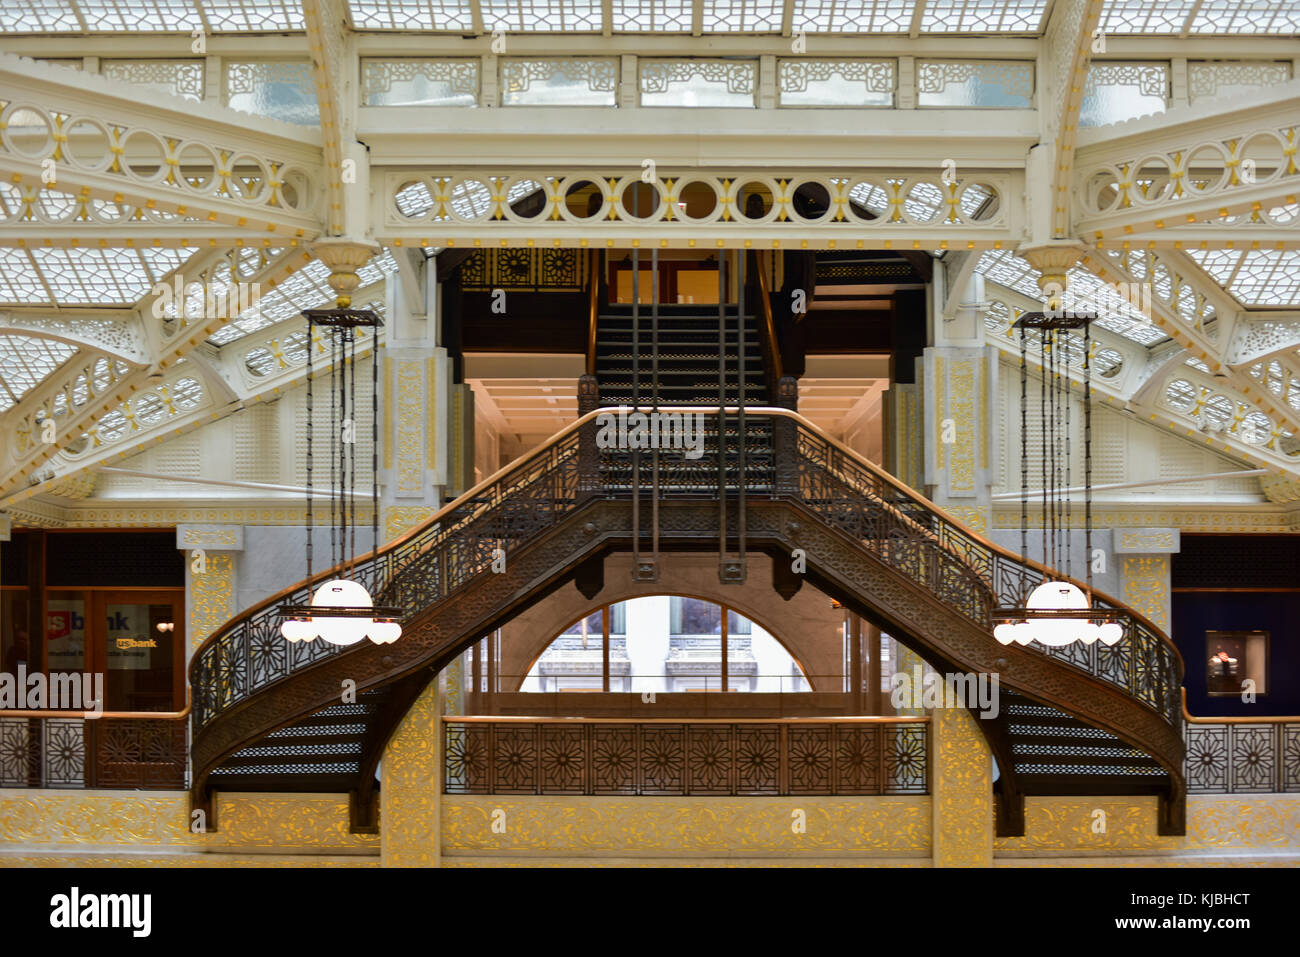 Chicago - September 8, 2015: Lobby in the Rookery Building, a historic landmark located at 209 South LaSalle Street Stock Photo